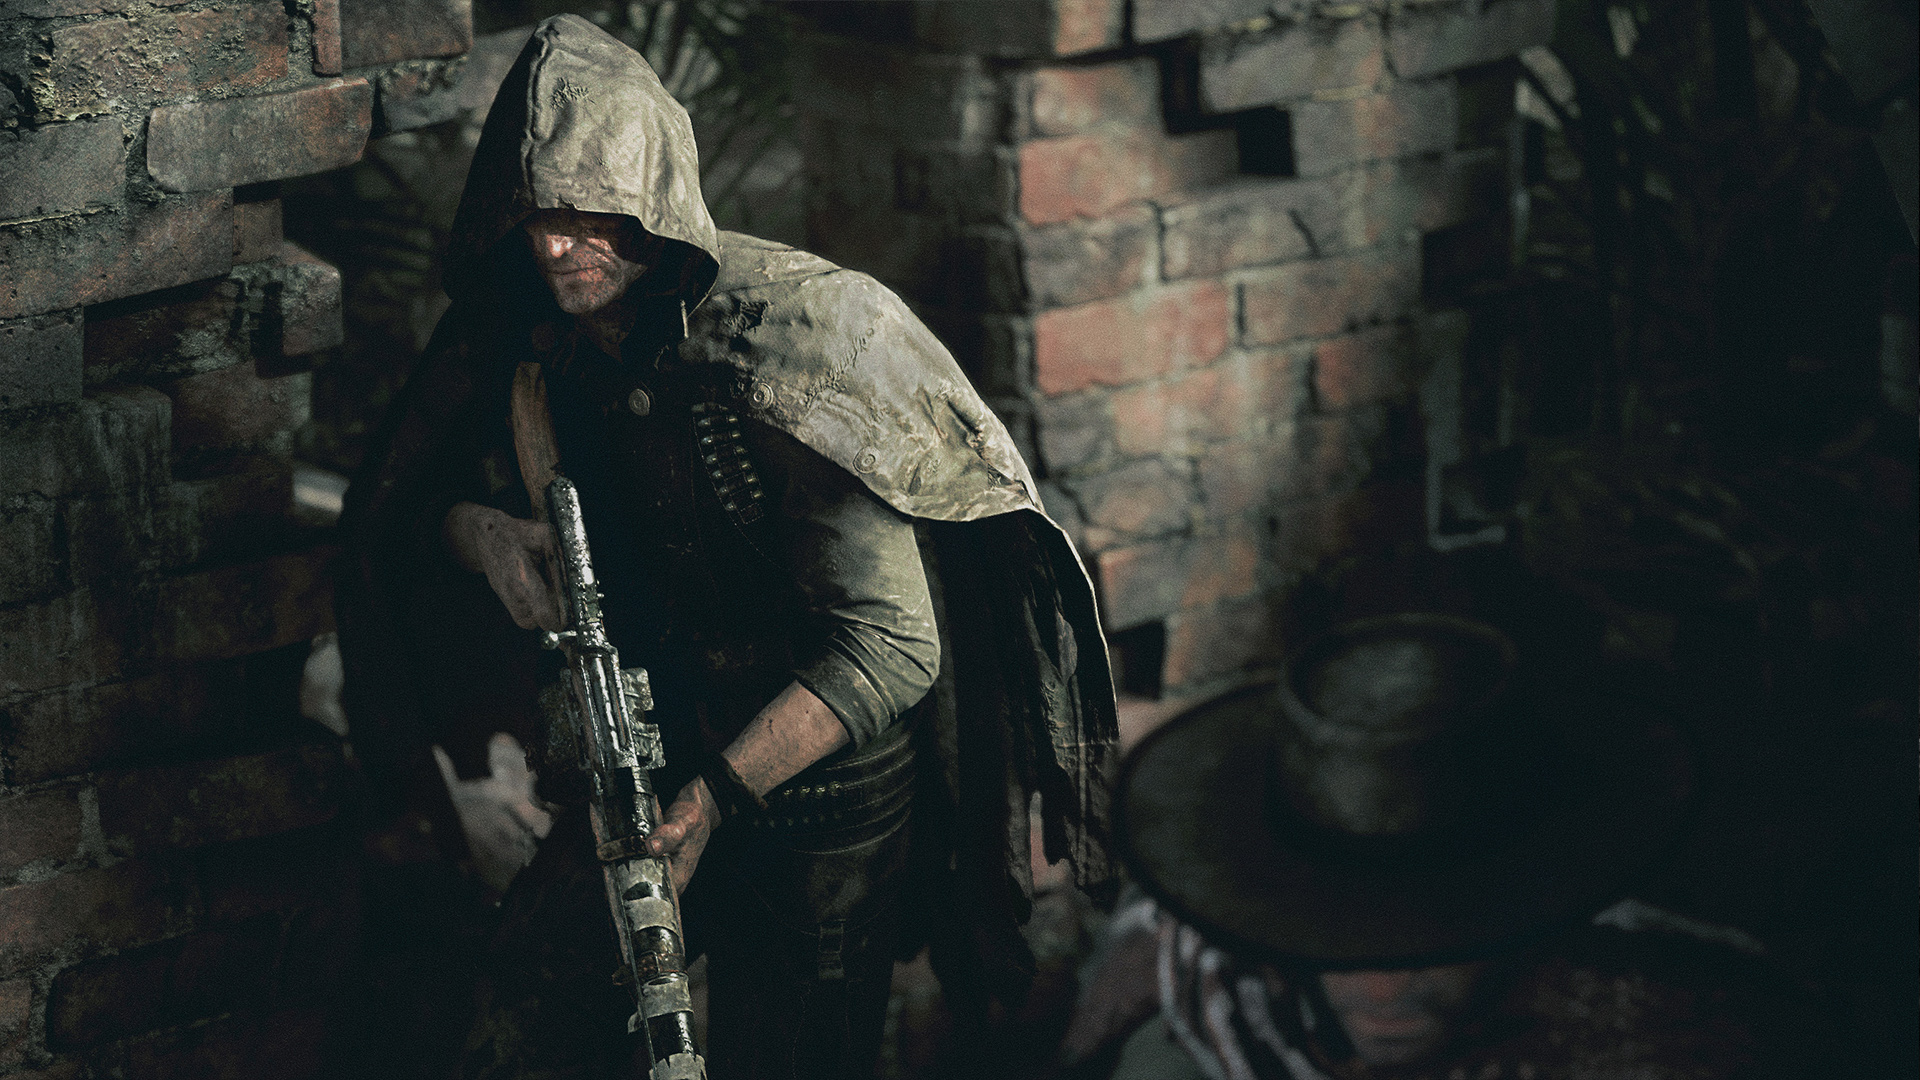 Crytek Announces Delays To Hunt: Showdown's Next Patch Due To COVID-19 Complications